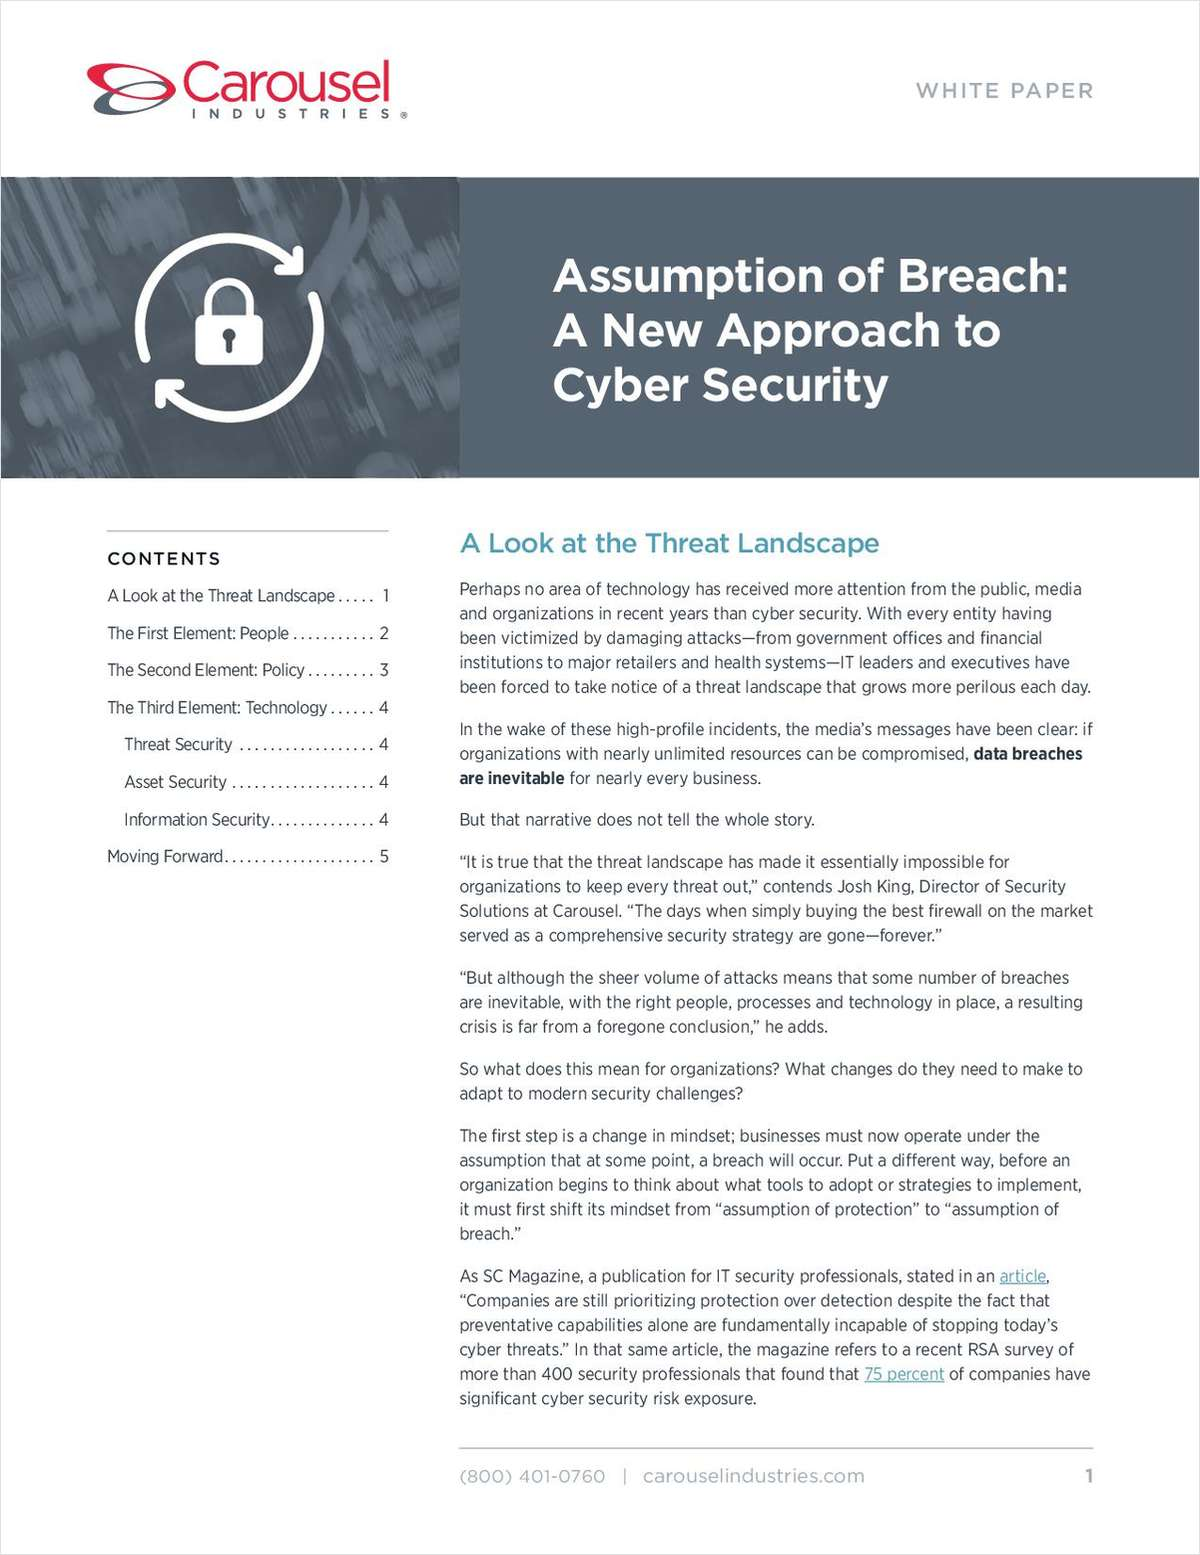 Assumption of Breach: A New Approach to Cyber Security